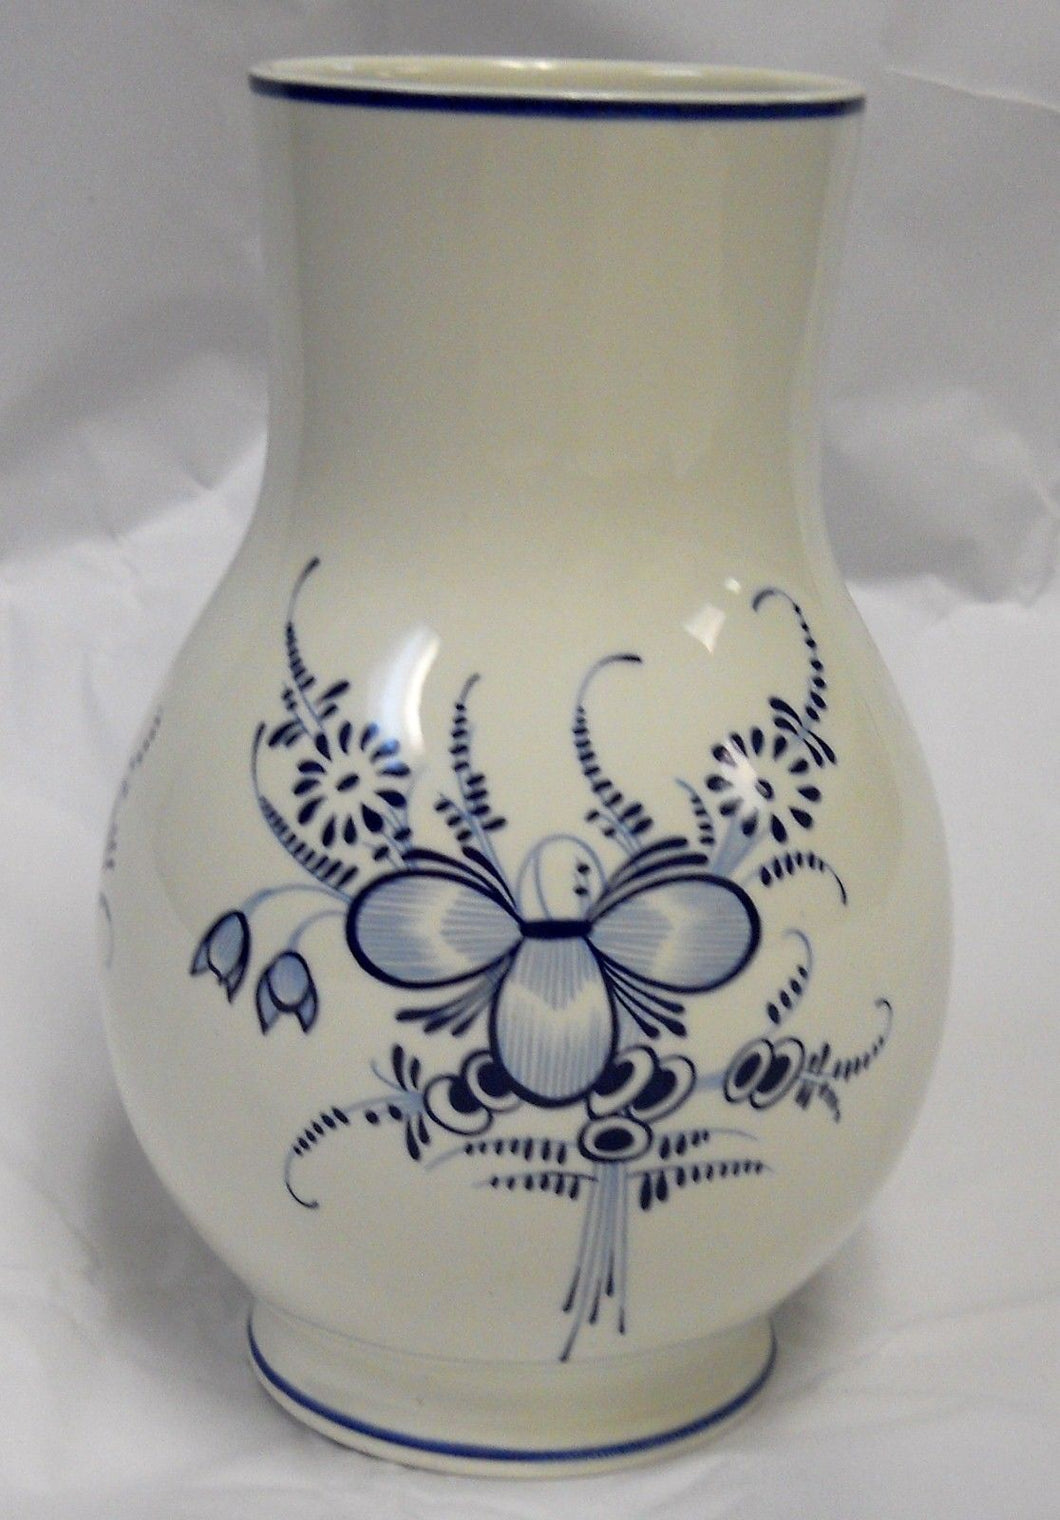 VILLEROY & BOCH china VIEUX SEPTFONTAINES pattern Vase @ 6 3/4